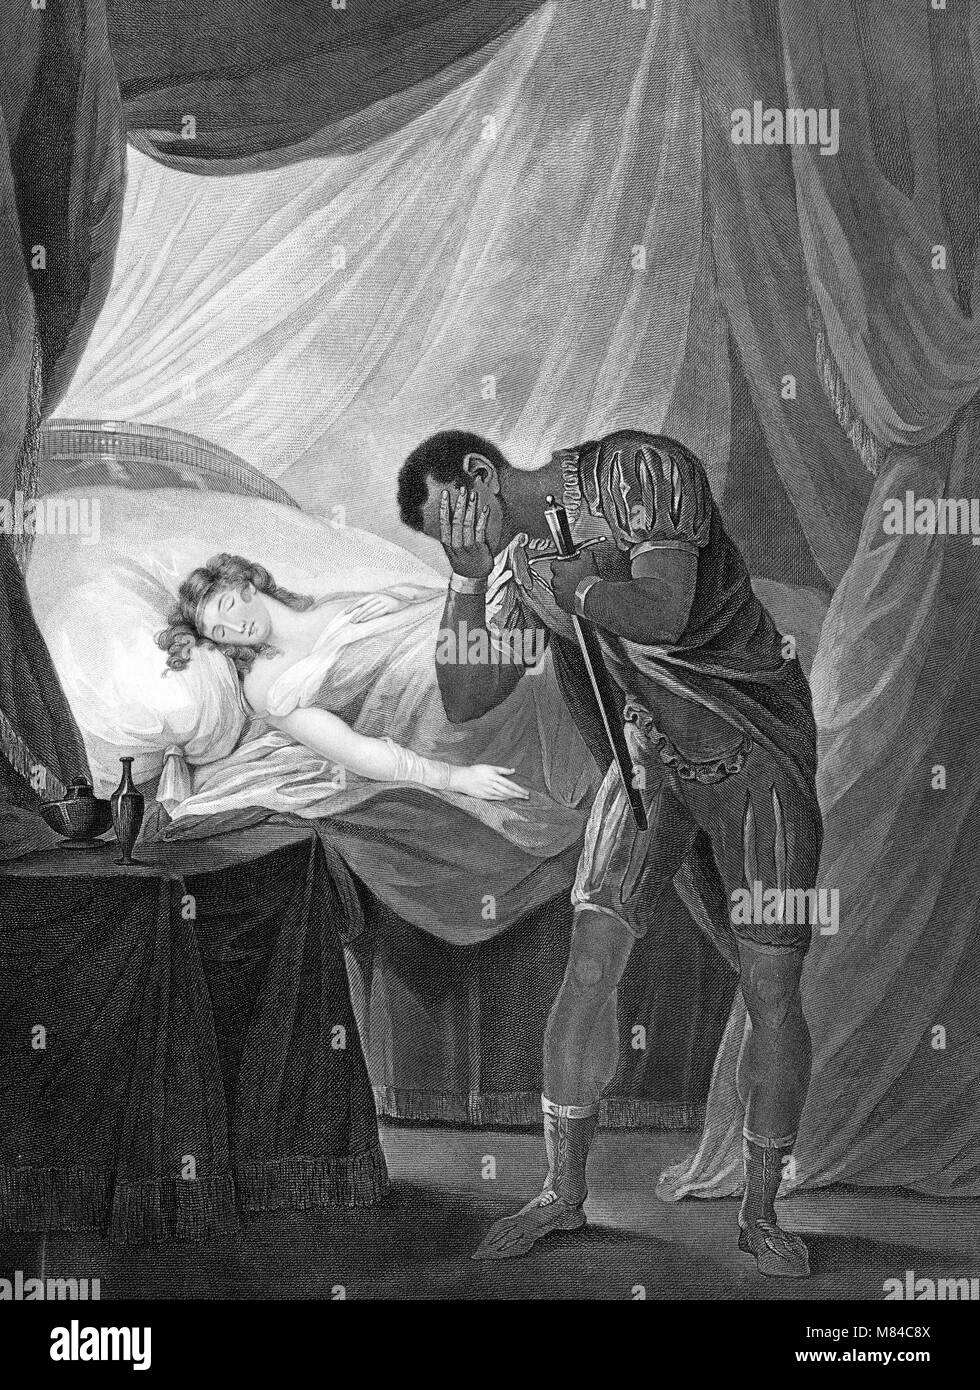 Othello, Act V, Scene II showing Othello with a sword and Desdemona asleep. An engraving by William Satchwell Leney - Stock Image